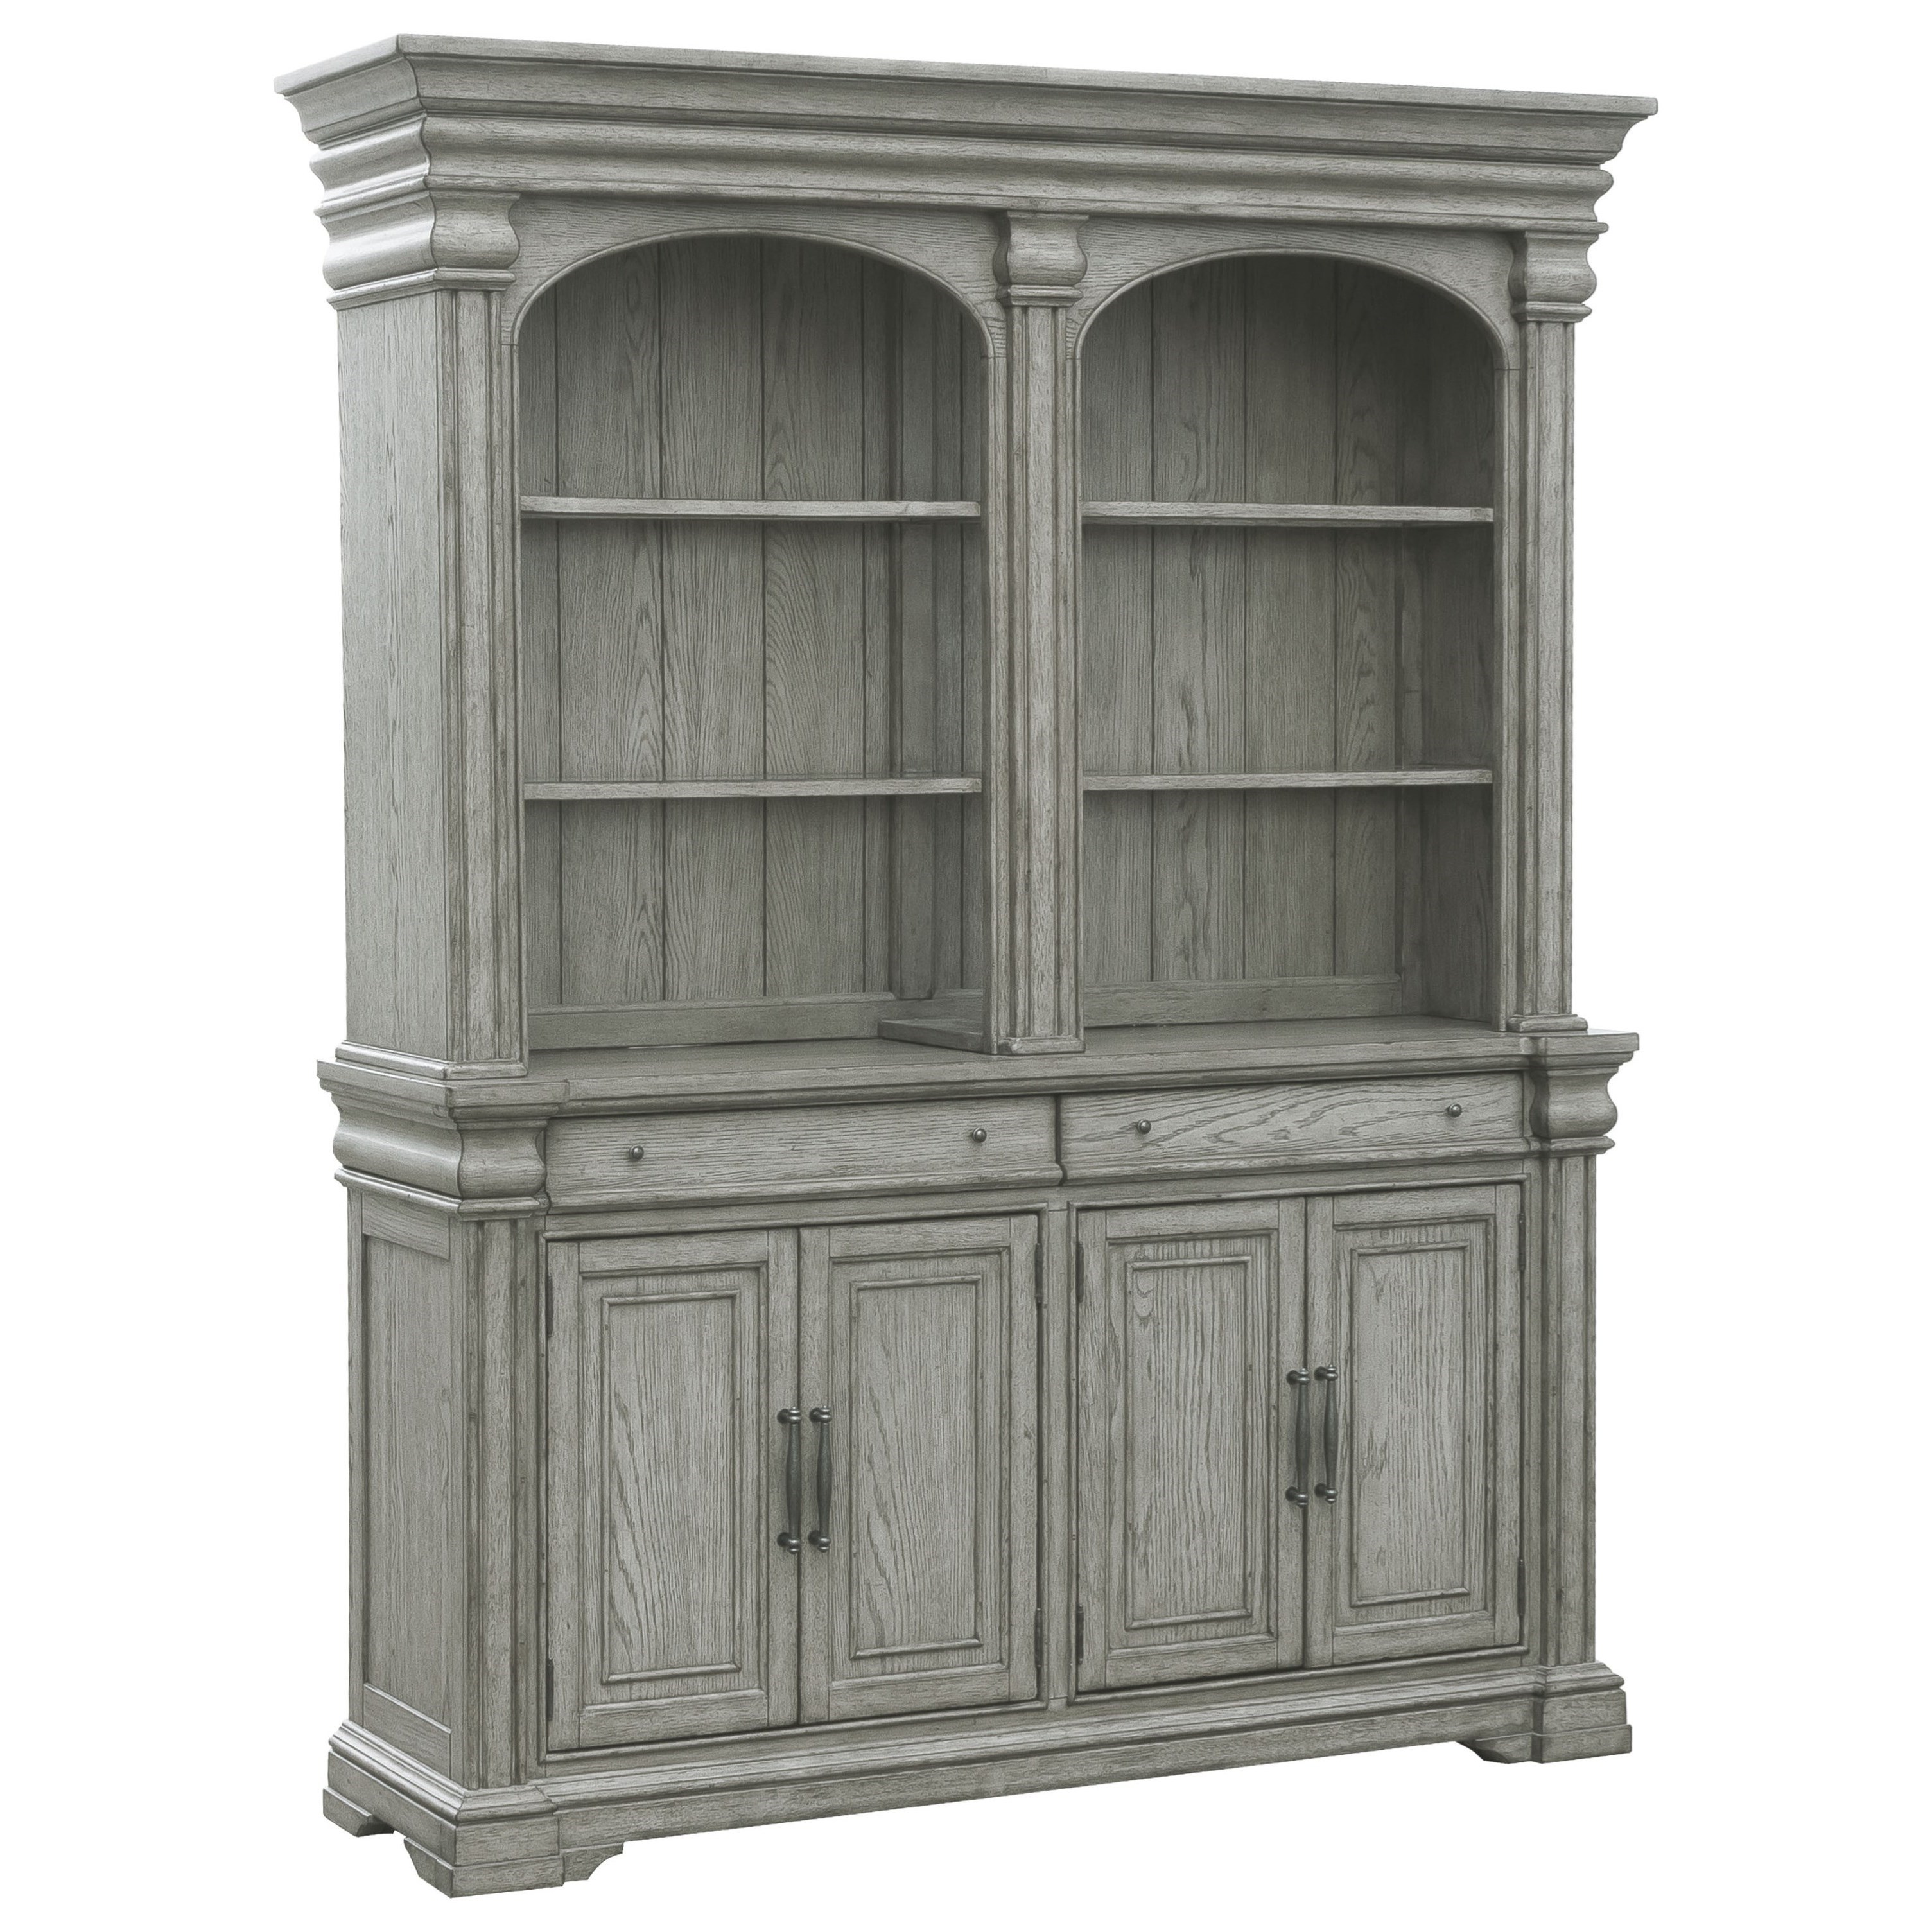 Madison Ridge Server and Hutch by Pulaski Furniture at Alison Craig Home Furnishings